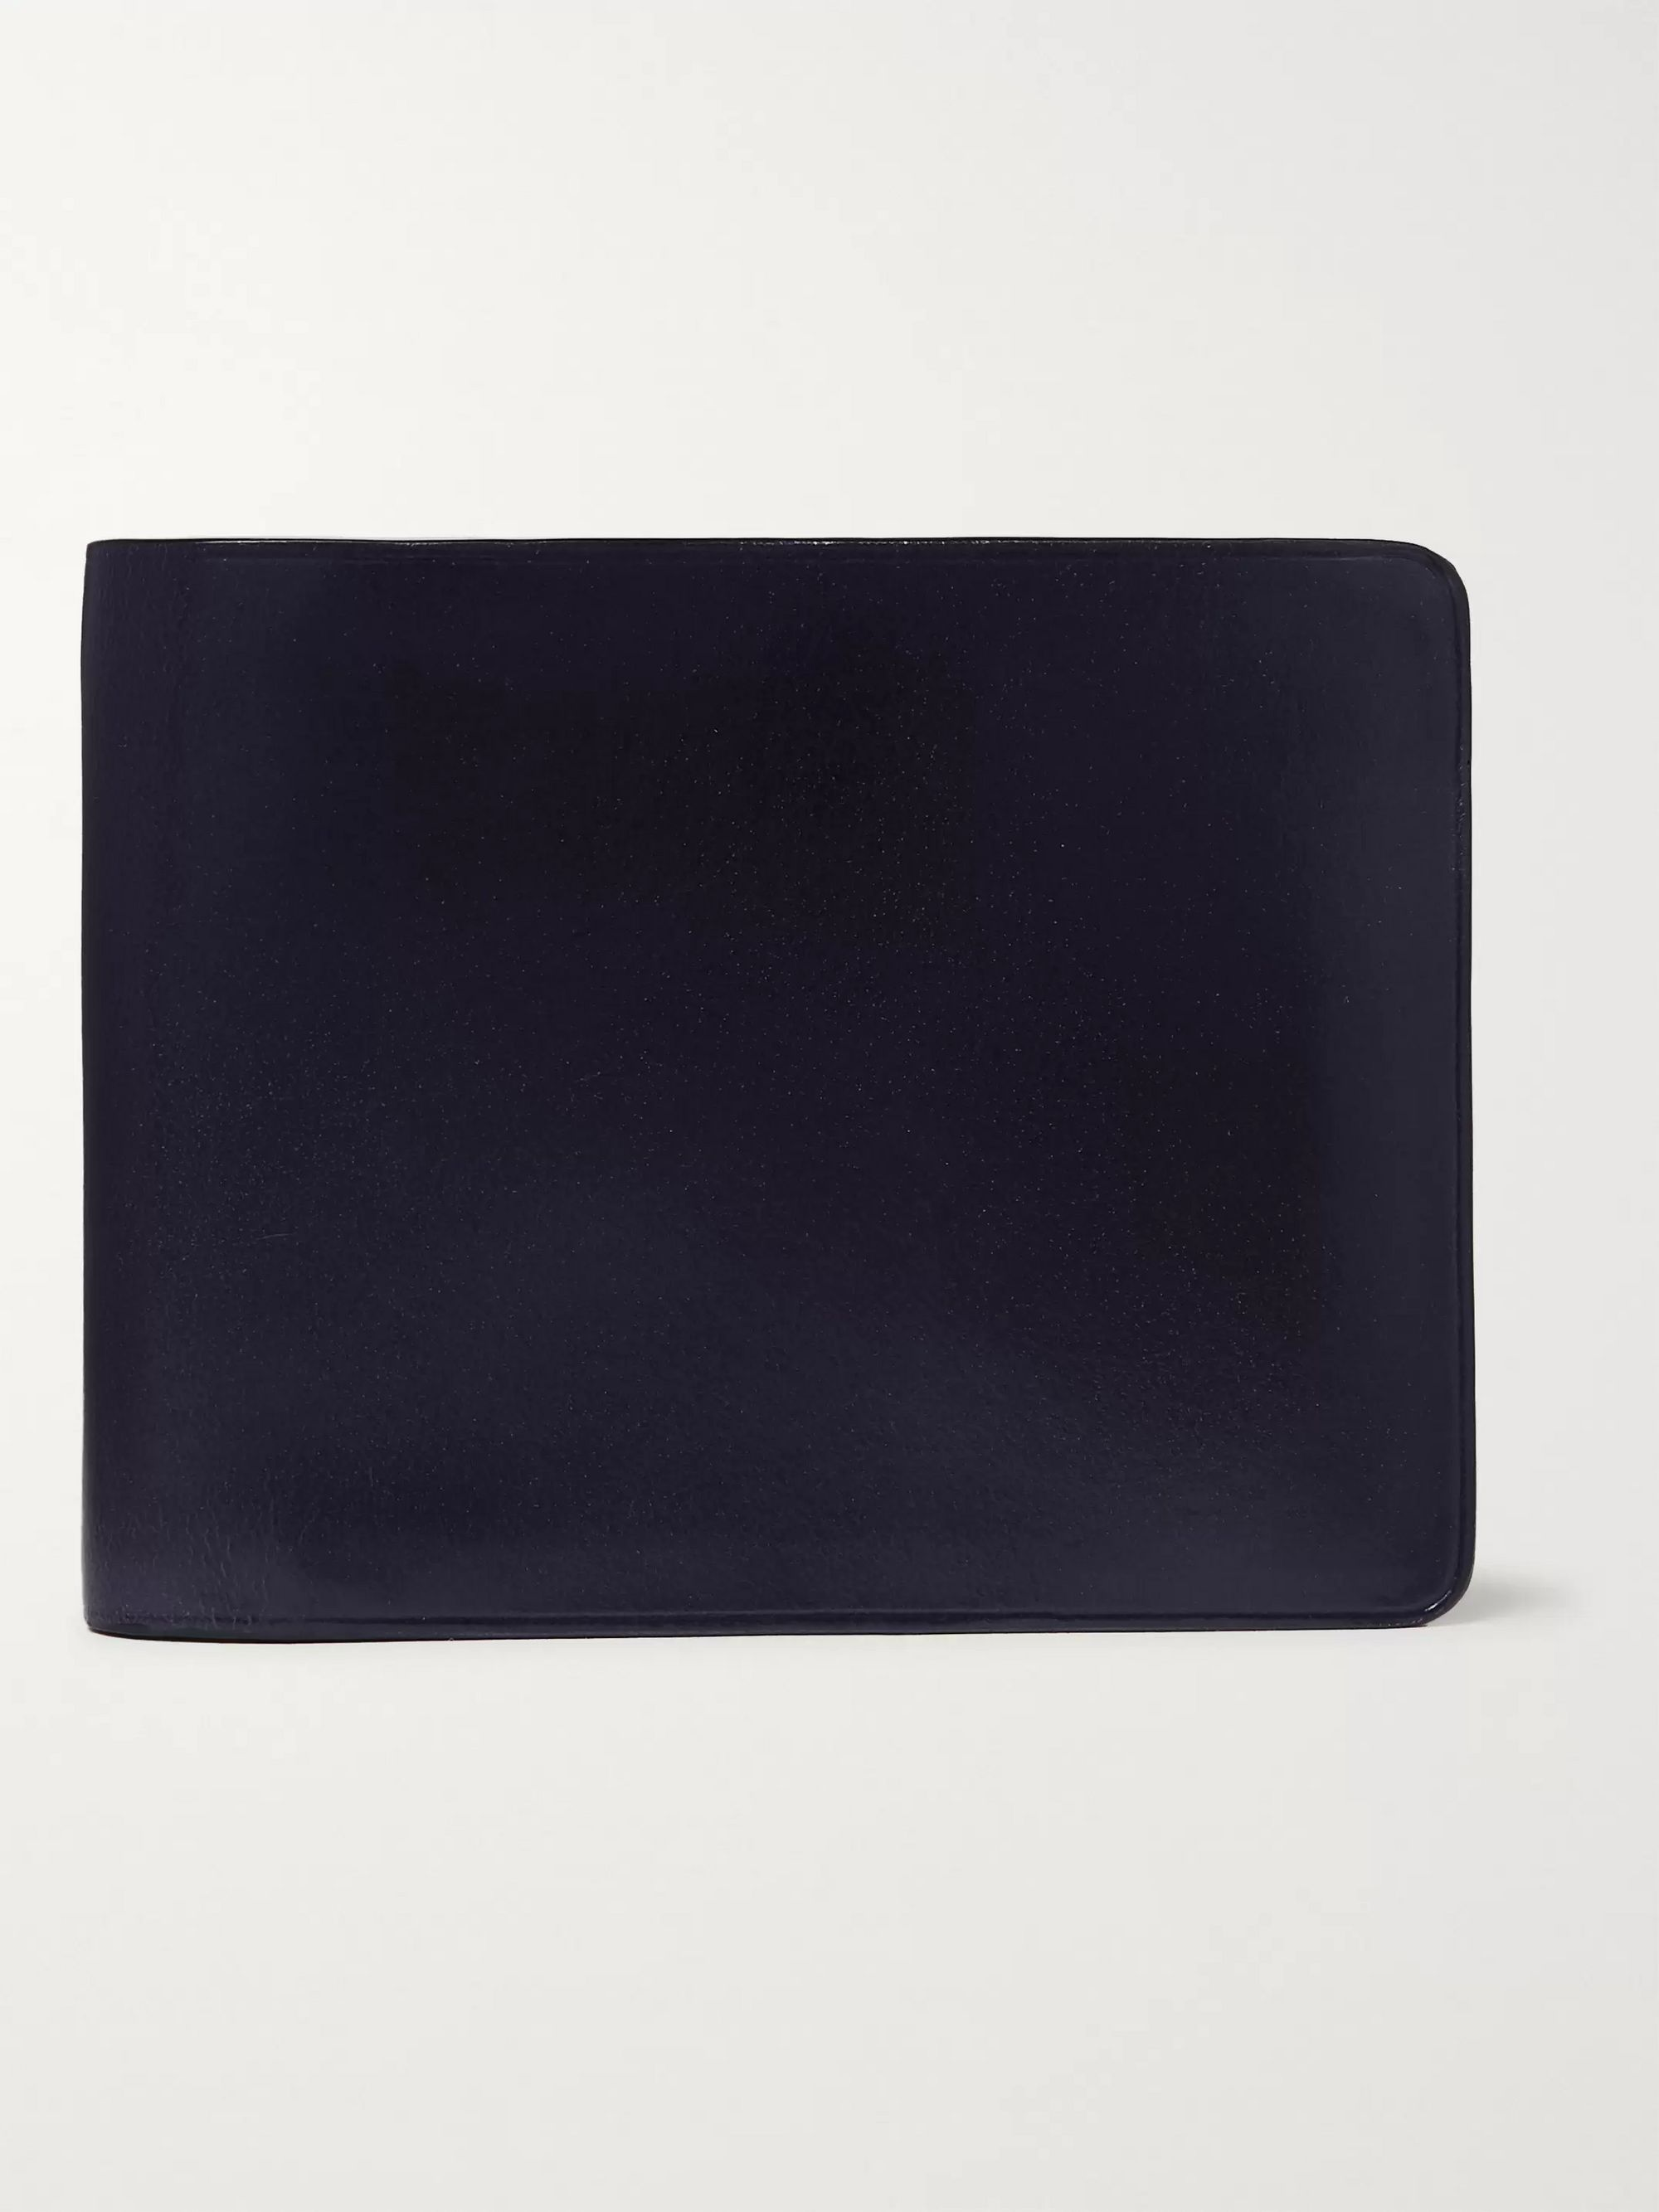 Polished Leather Billfold Wallet by Il Bussetto